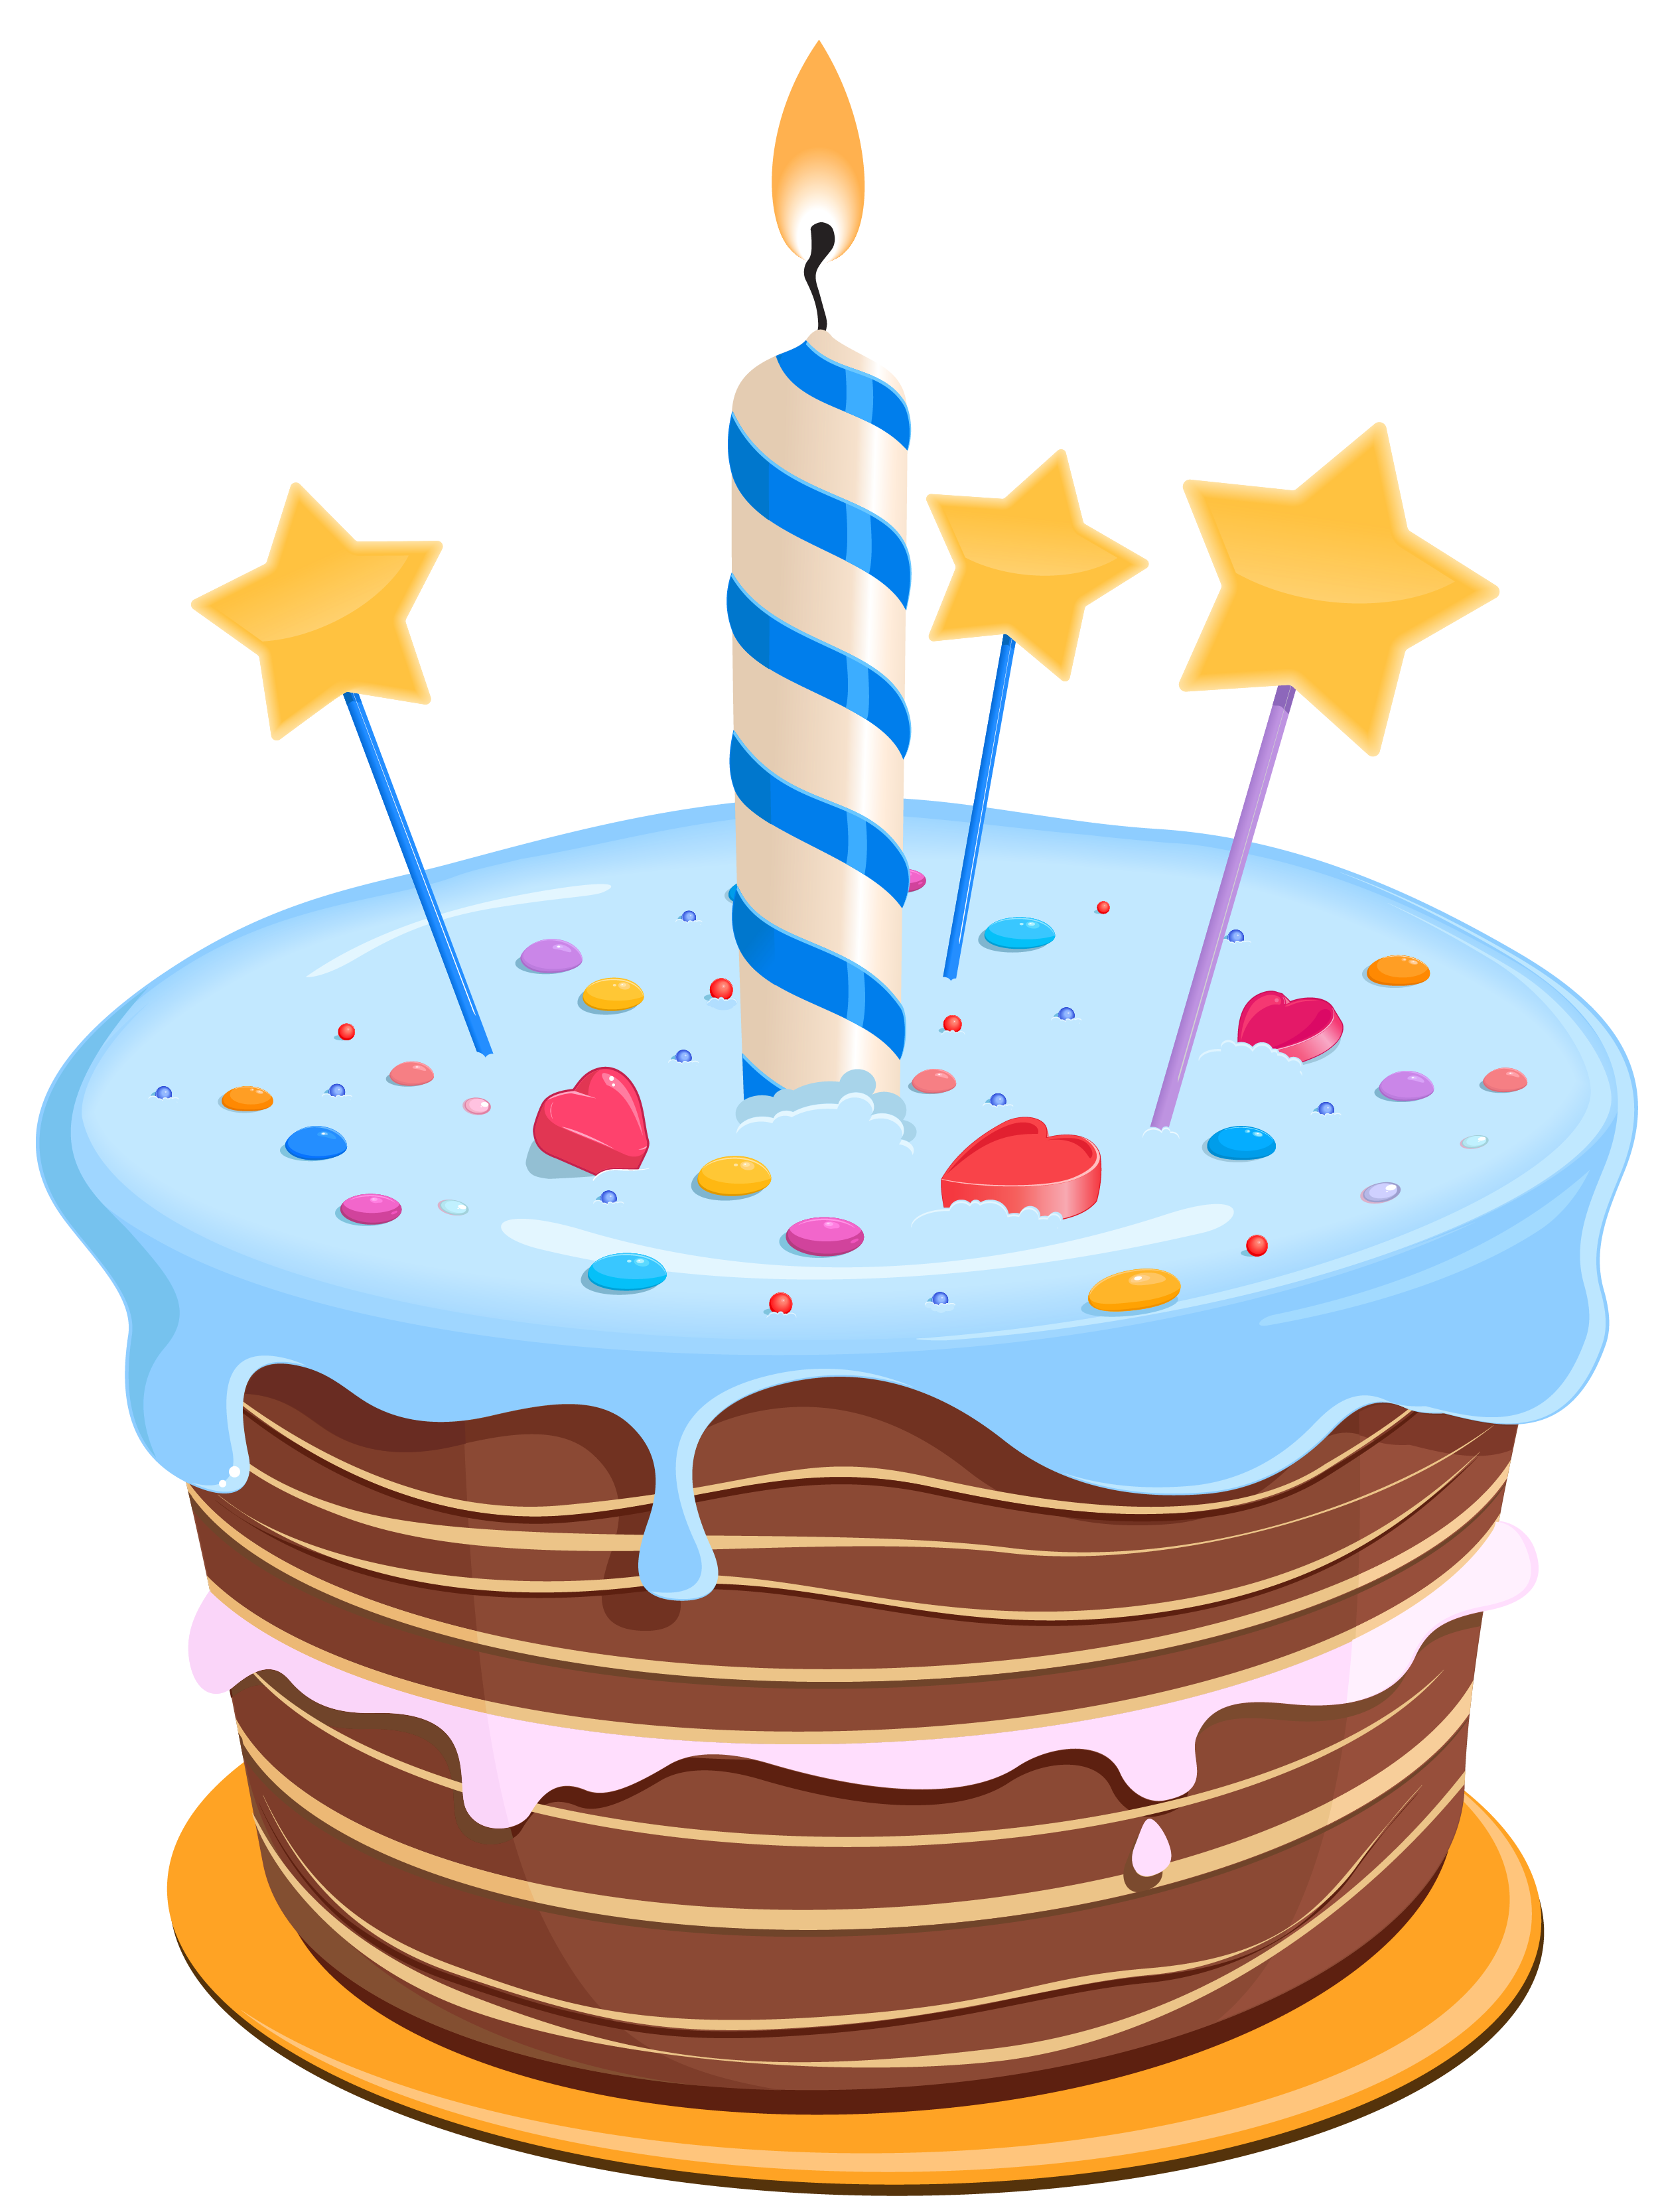 Dessert clipart road.  collection of cake